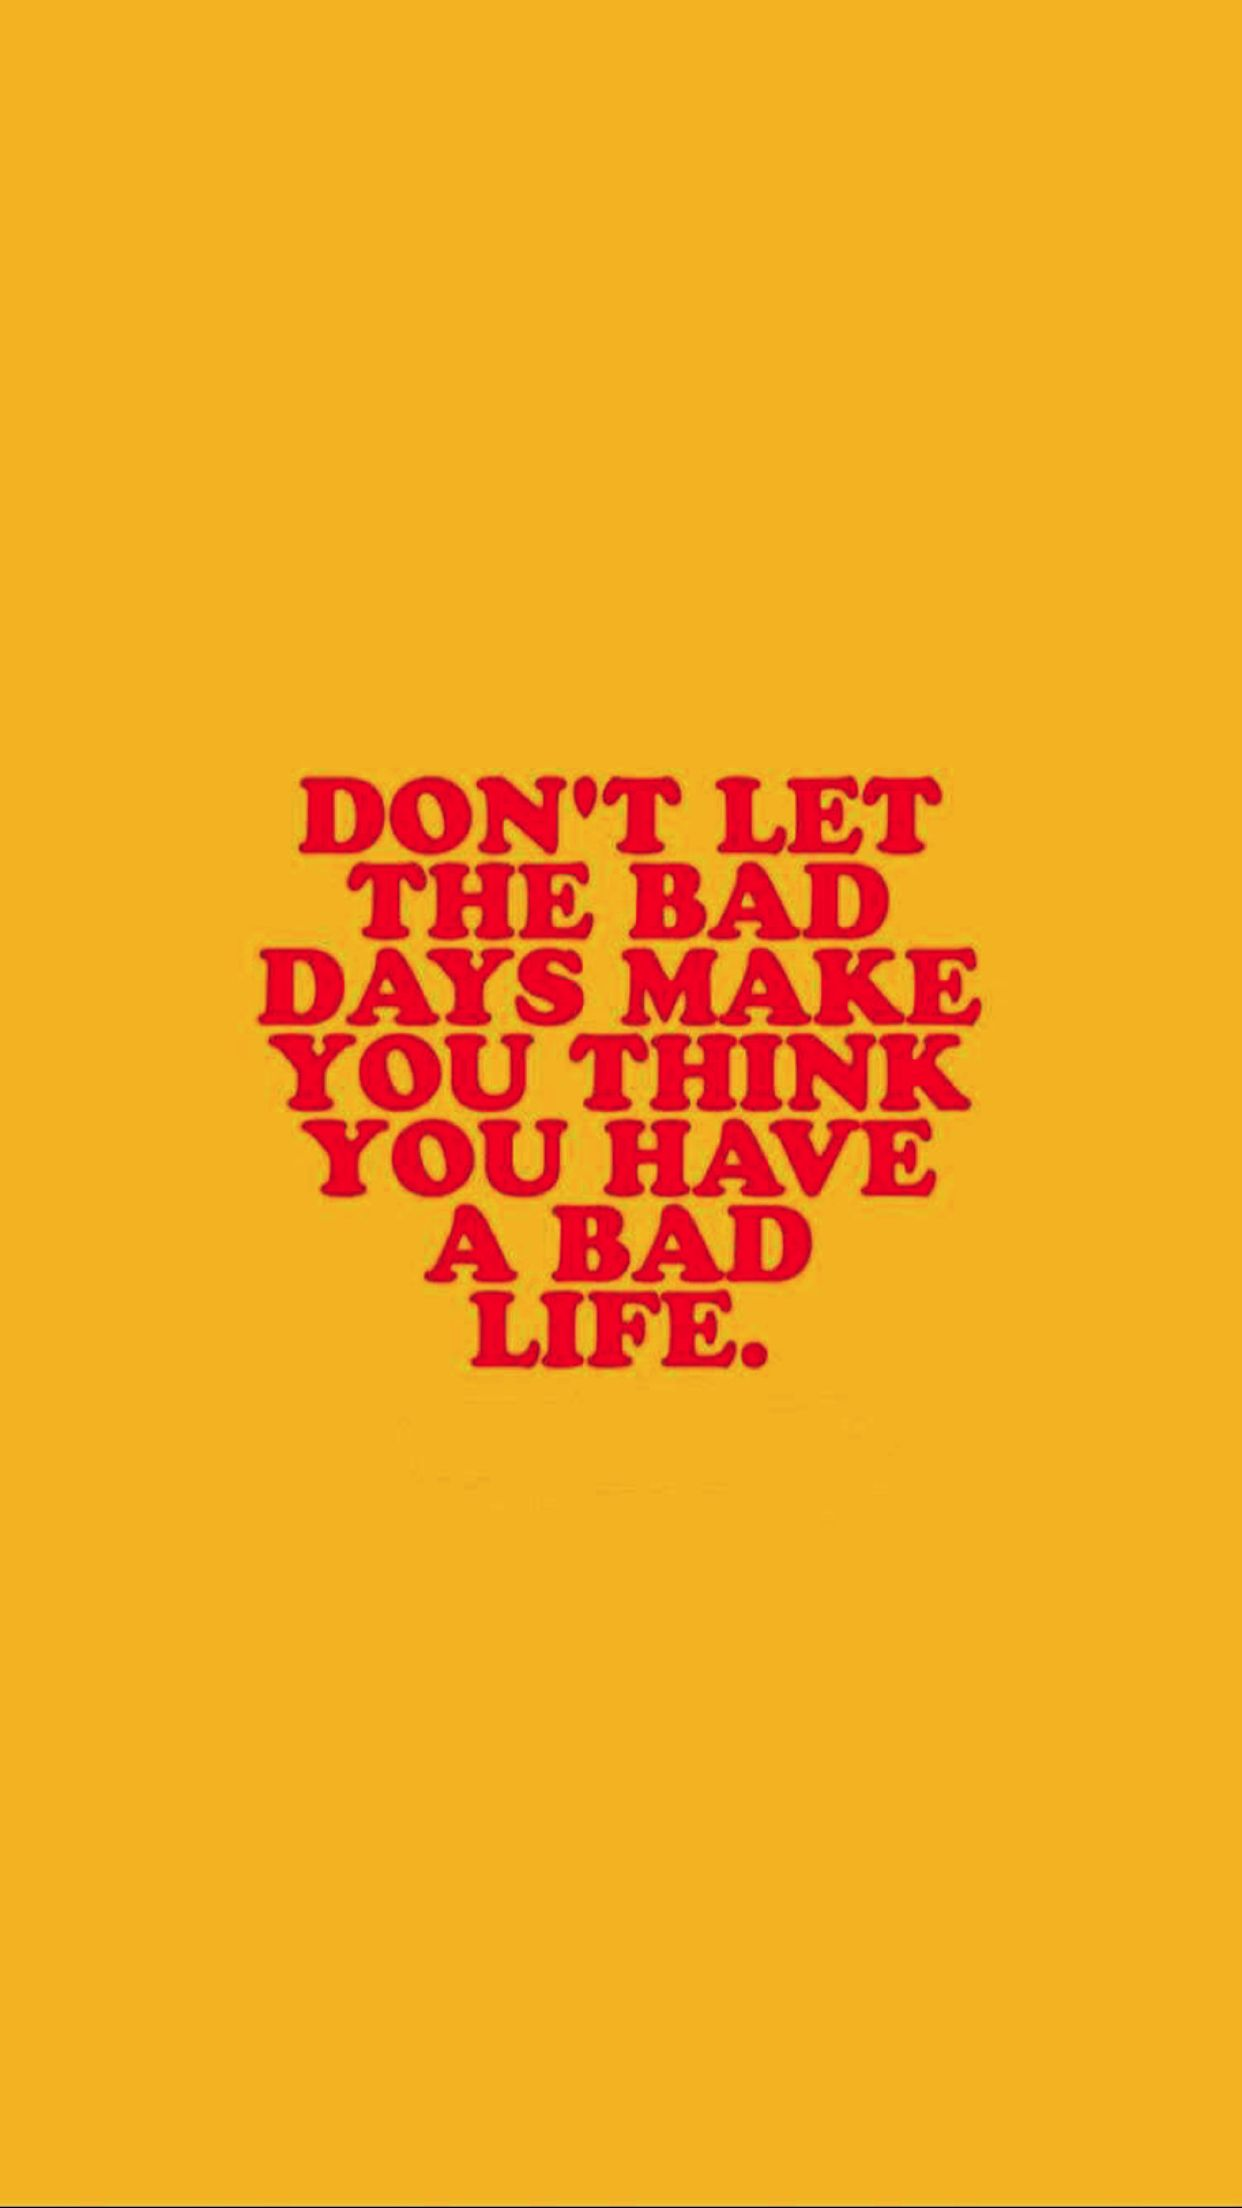 Pin By On Wallpapers Sticker Ideas Positive Quotes Words